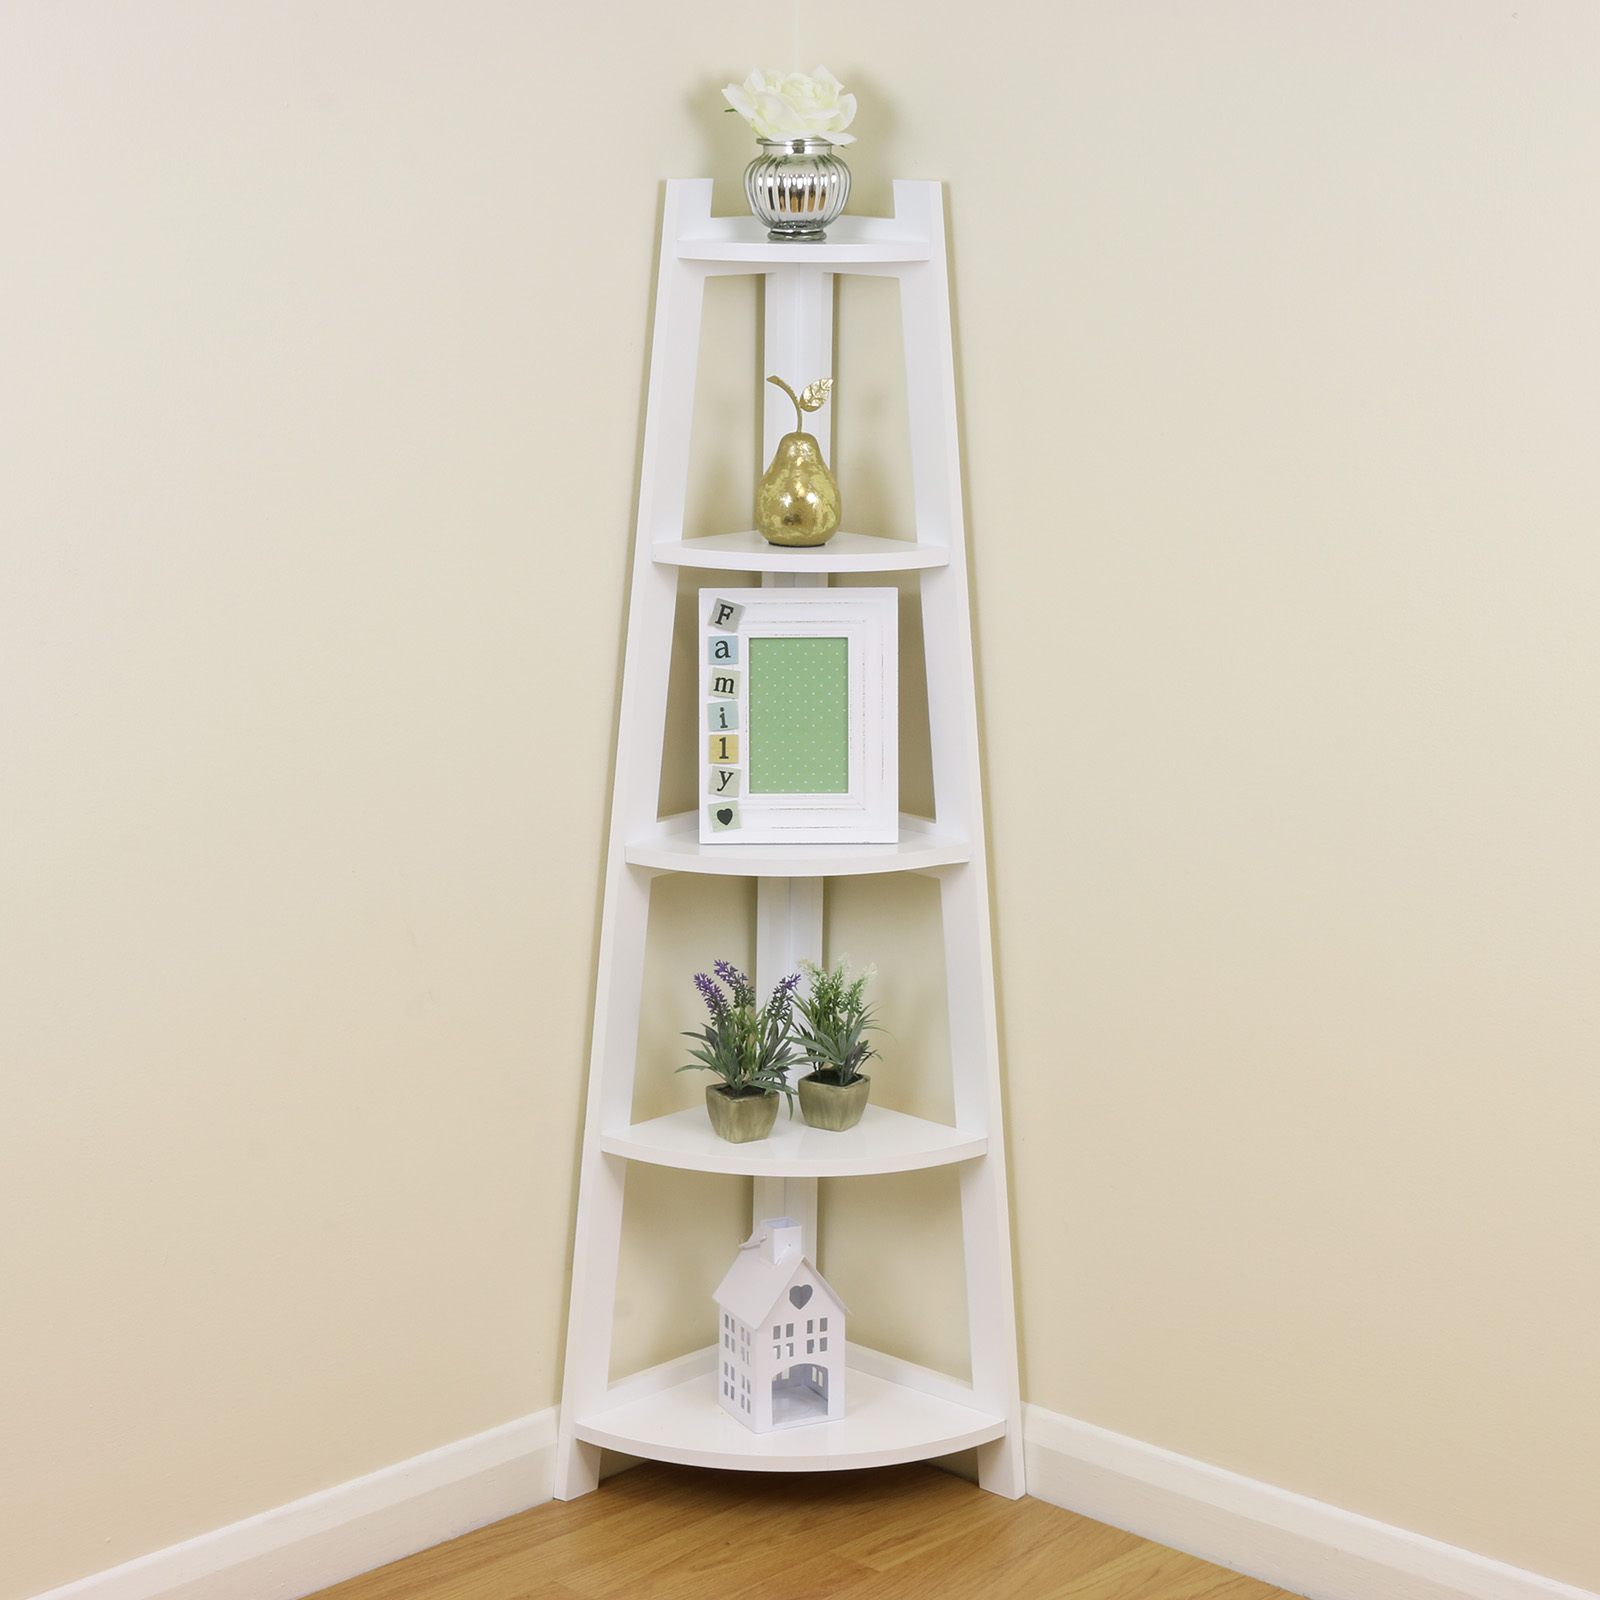 White 5 Tier Tall Corner Shelf/Shelving Unit Display Stand ...